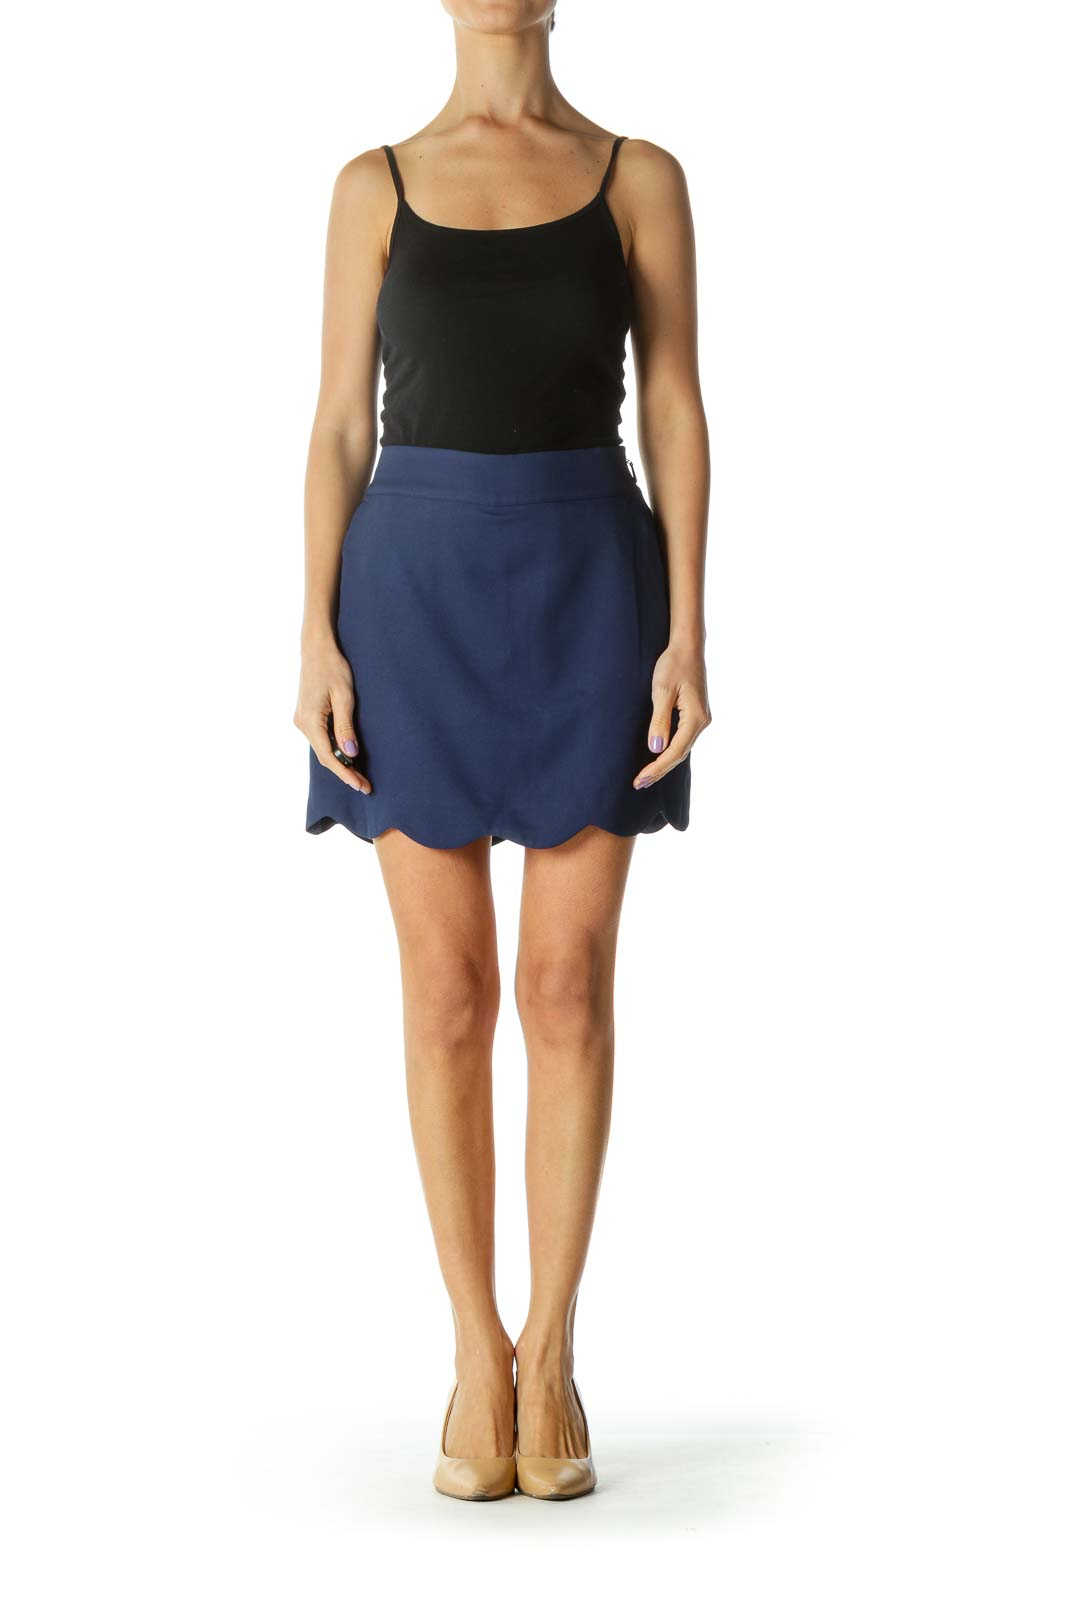 Navy Tennis Skirt with Shorts